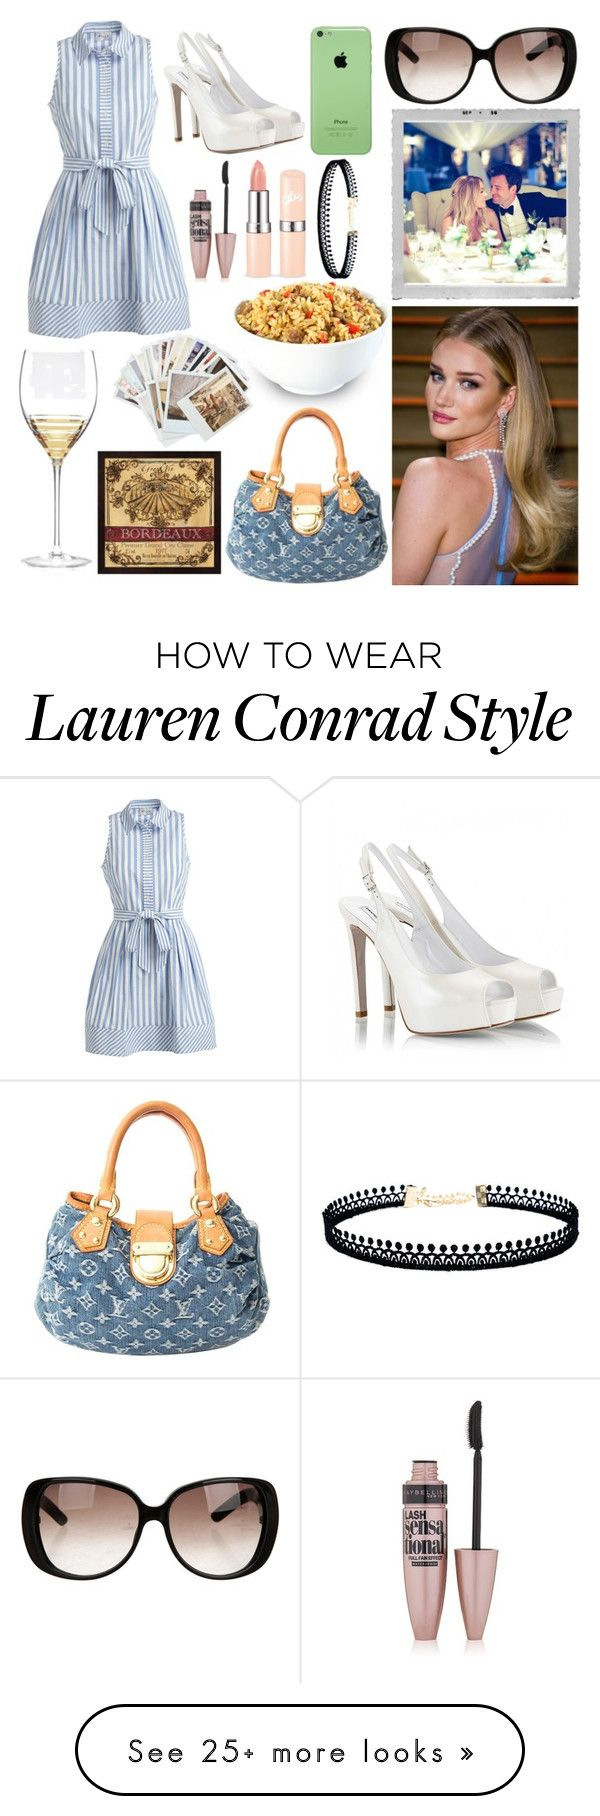 """""""Angela// book character"""" by frerardforever on Polyvore featuring Whiteley, Milly, Fratelli Karida, Maybelline, Chronicle Books, Louis Vuitton, LULUS, Gucci, Polaroid and Lauren Conrad"""